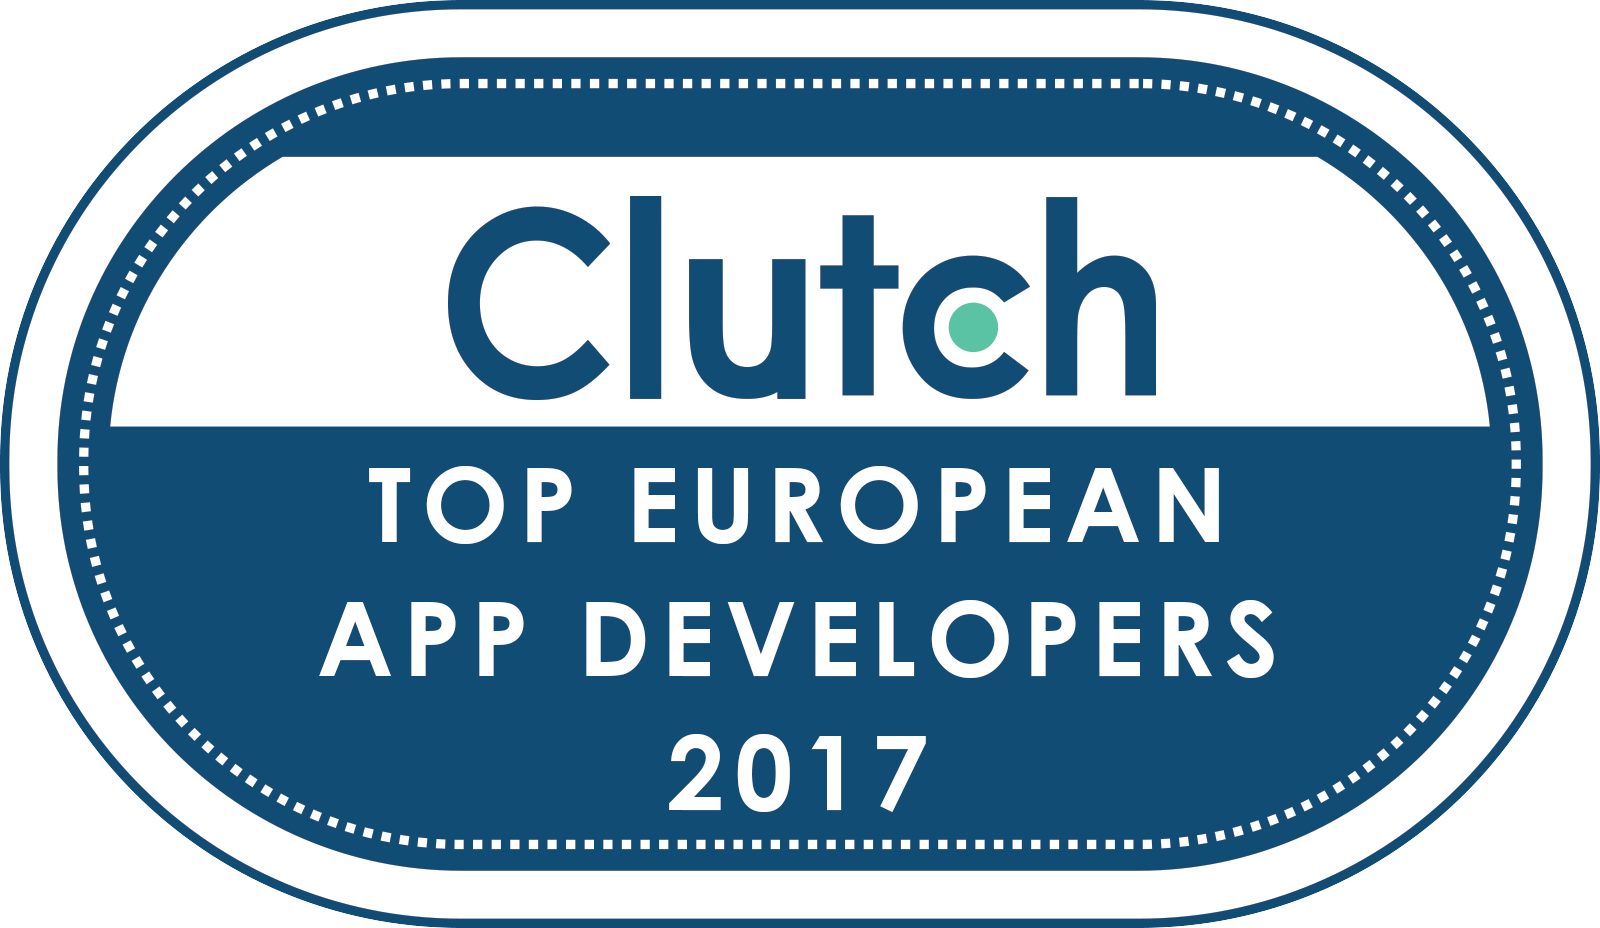 SimbirSoft is in Top European App Developers 2017